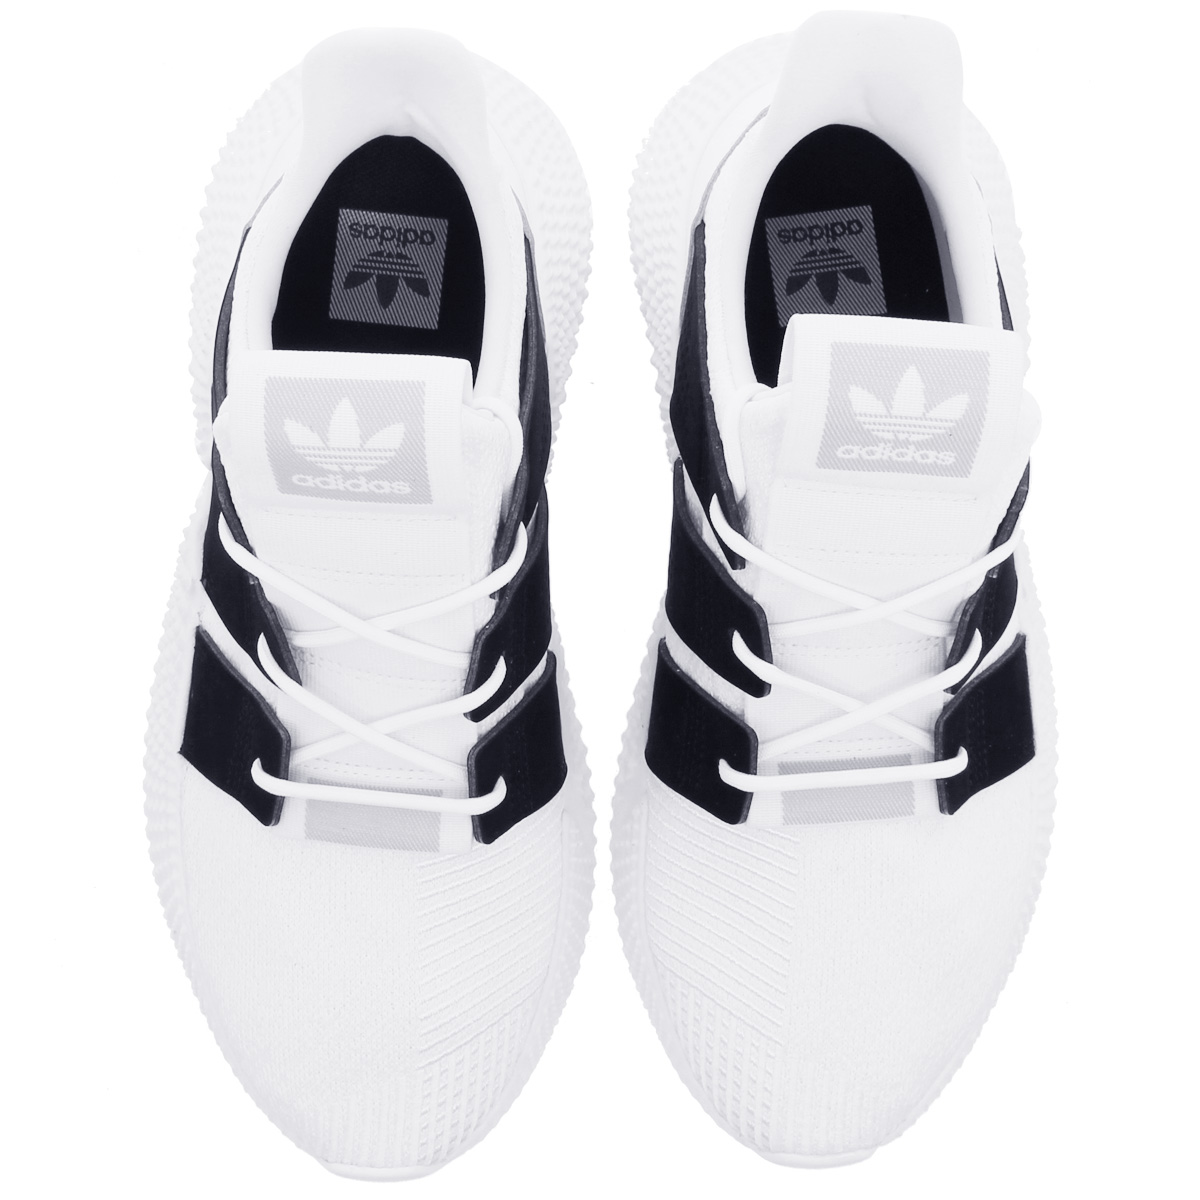 aec1f9b78e48d ... adidas PROPHERE Adidas pro Fear RUNNING WHITE/CORE BLACK/SHOCK LIME  d96727 ...